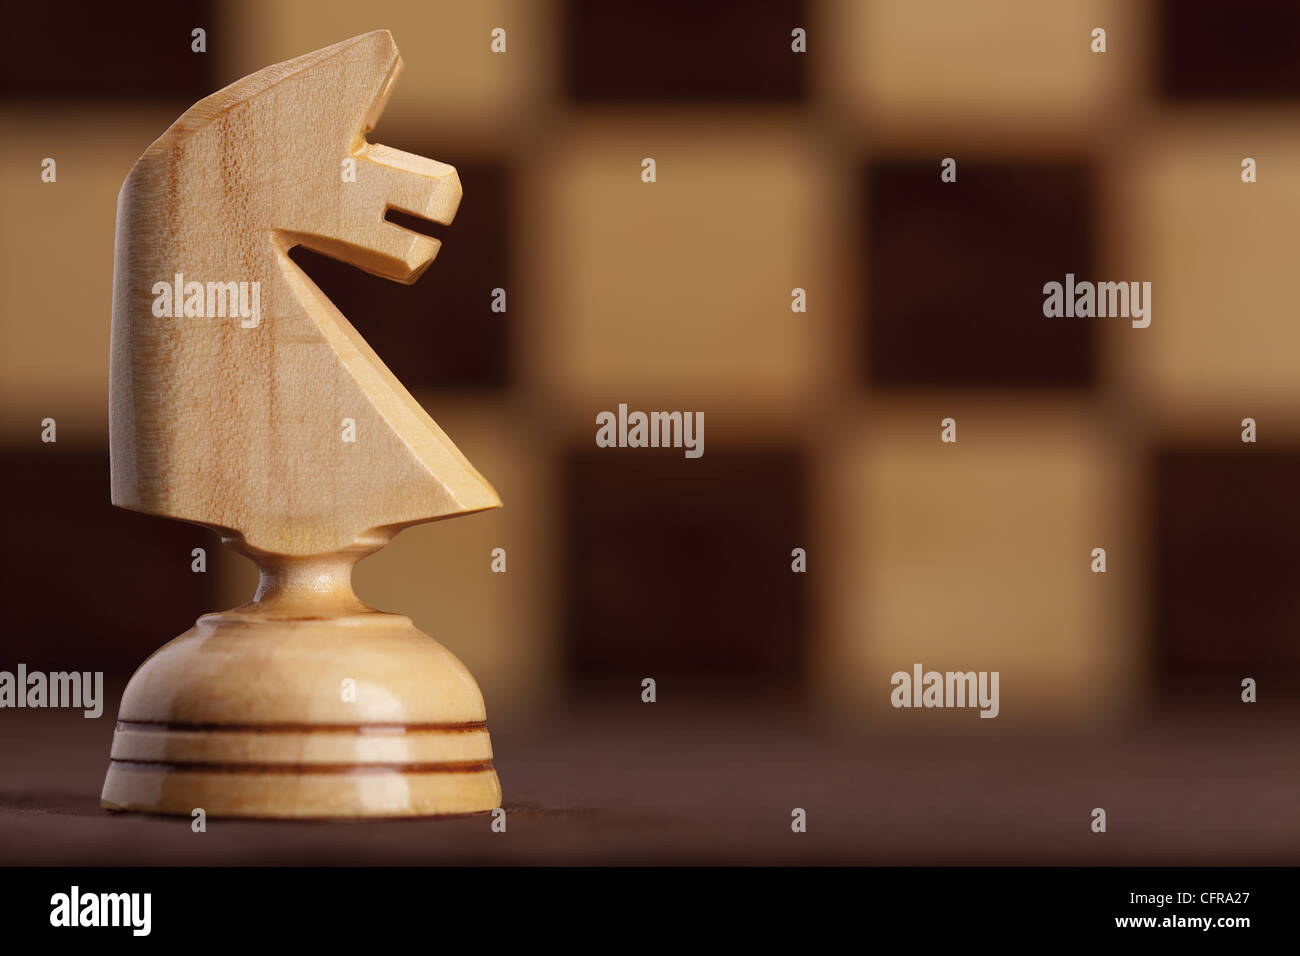 wooden white knight on chessboard background - Stock Image